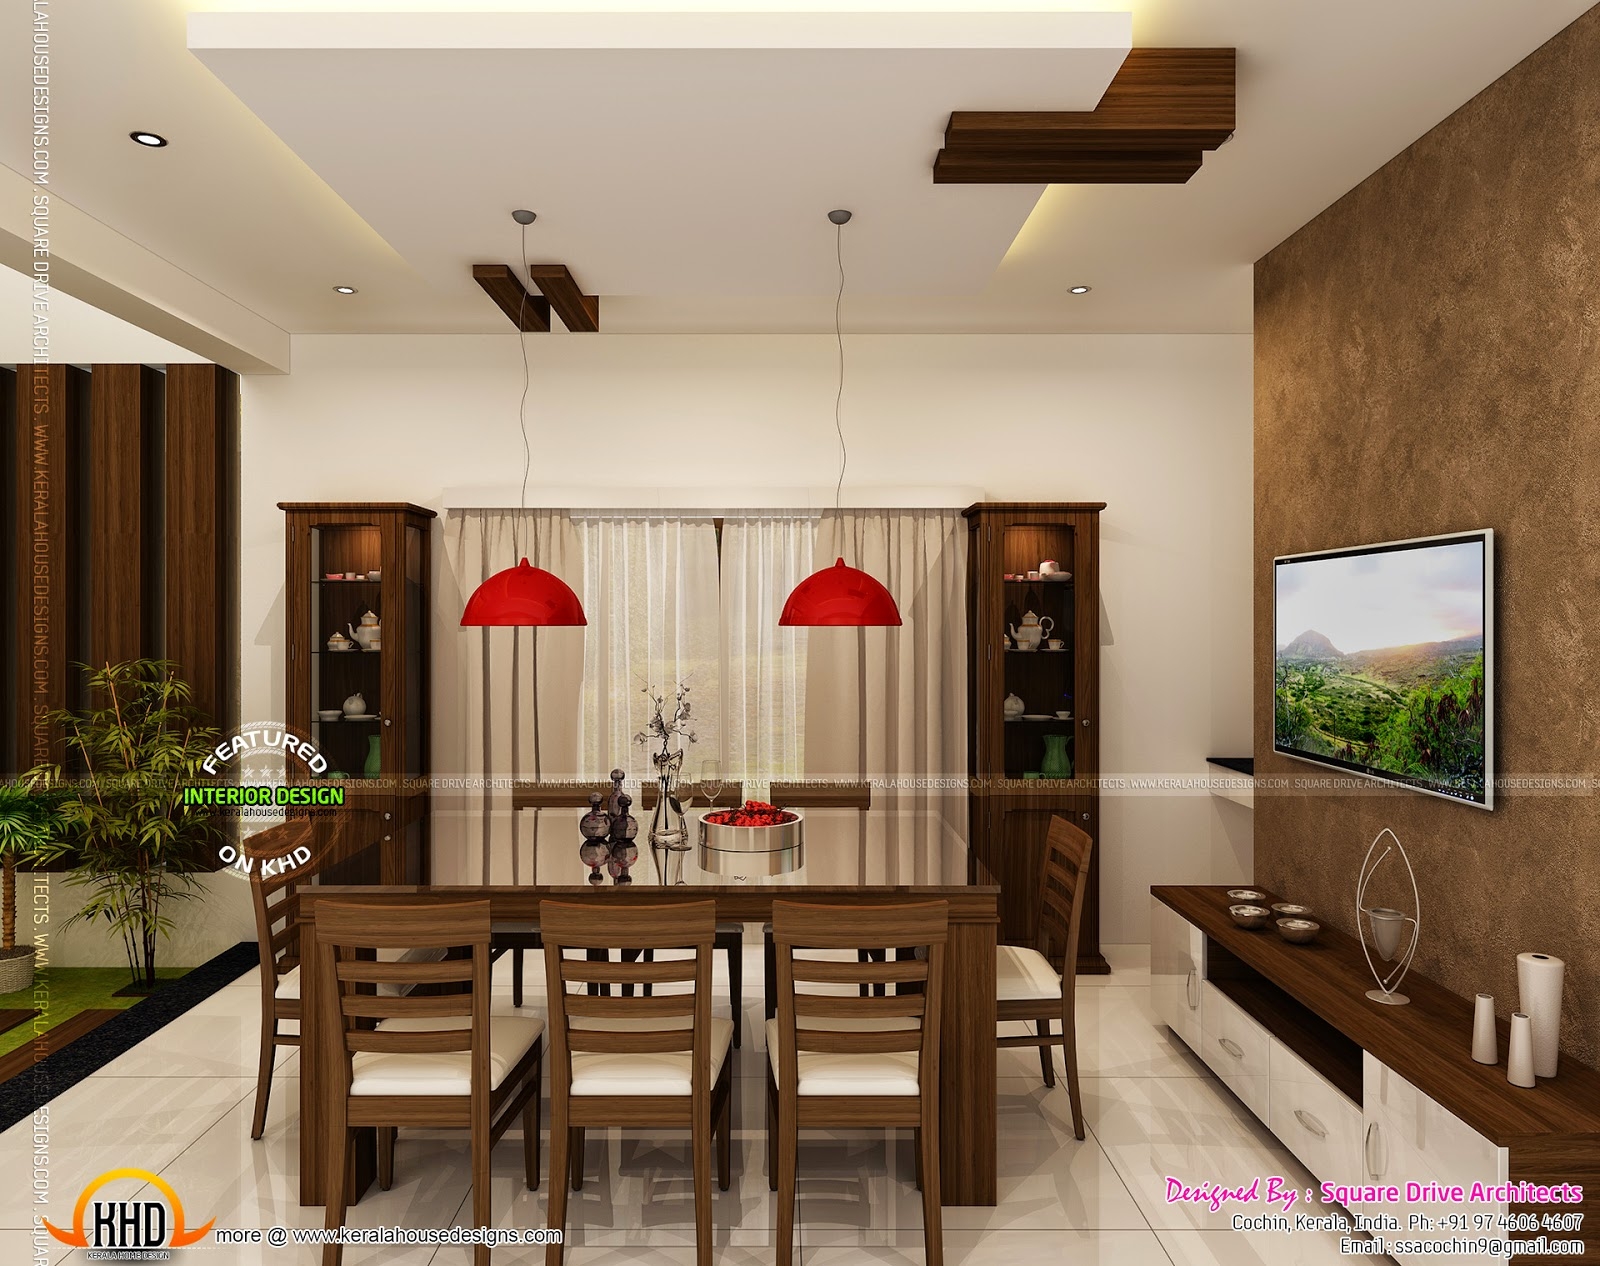 Home interiors designs kerala home design and floor plans for Dining room designs 2018